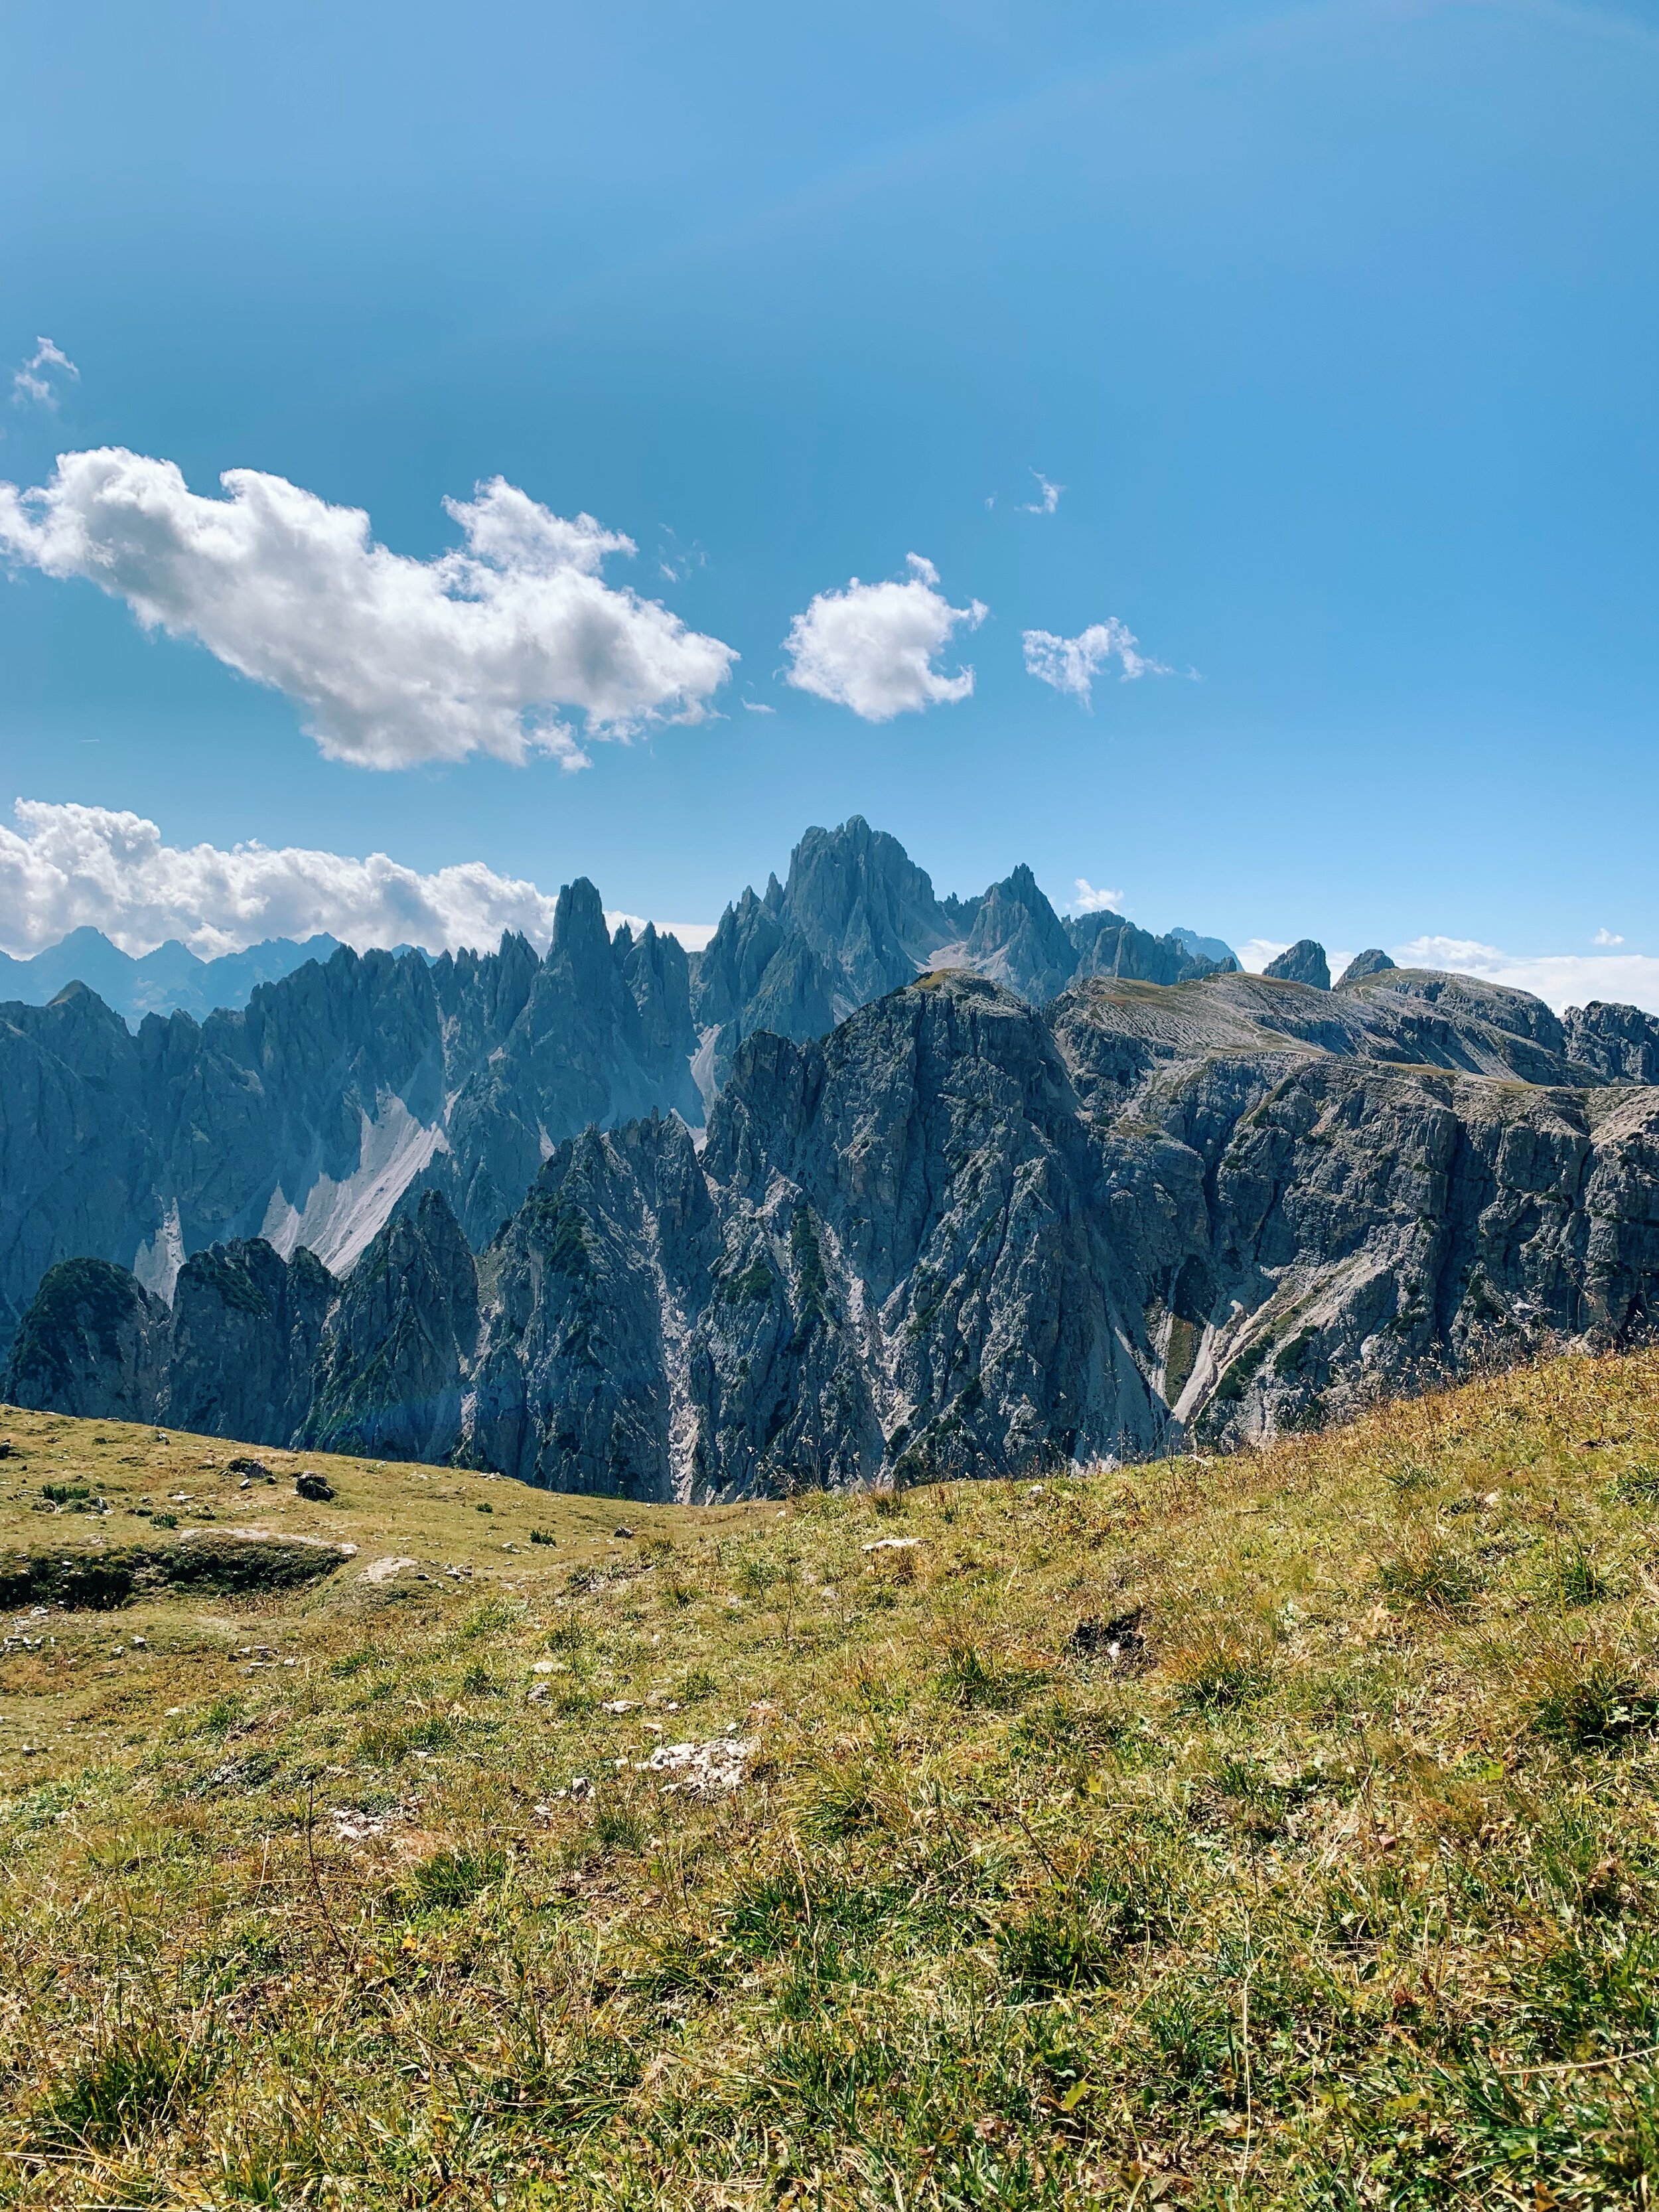 This particular cluster of Dolomites reminded me of cathedral spires. Enchanting.